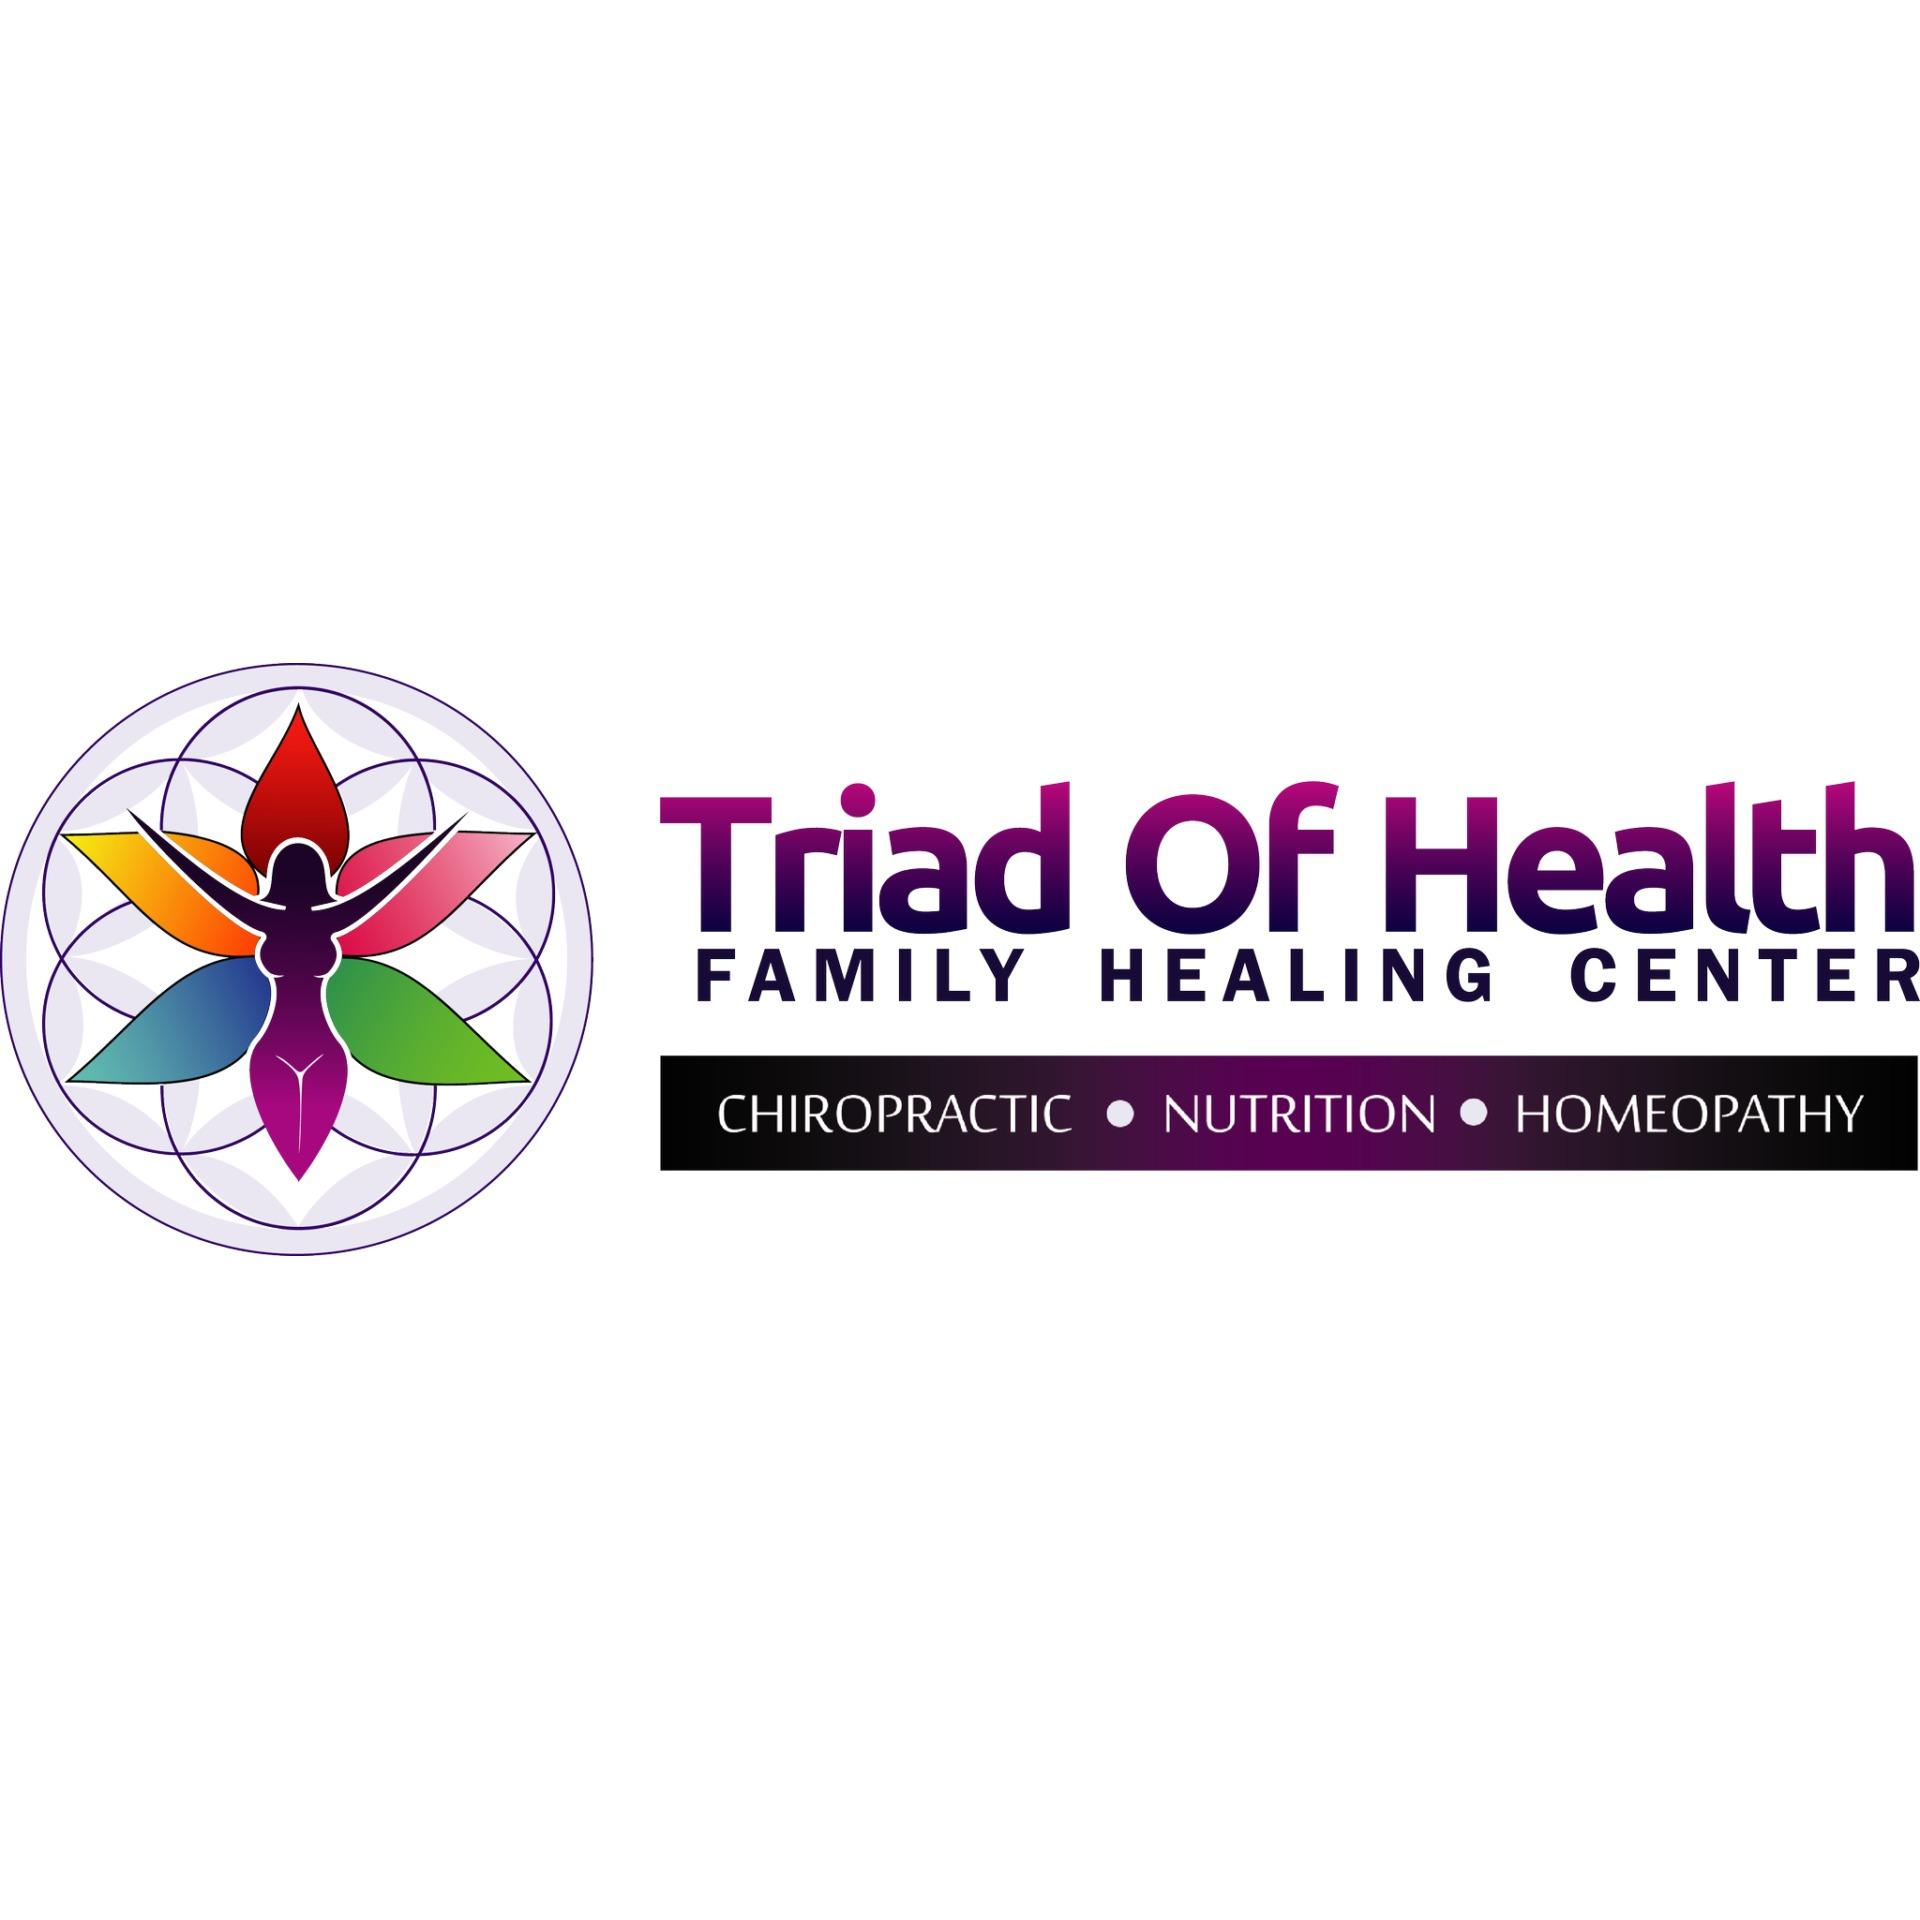 Triad Of Health Family Healing Center